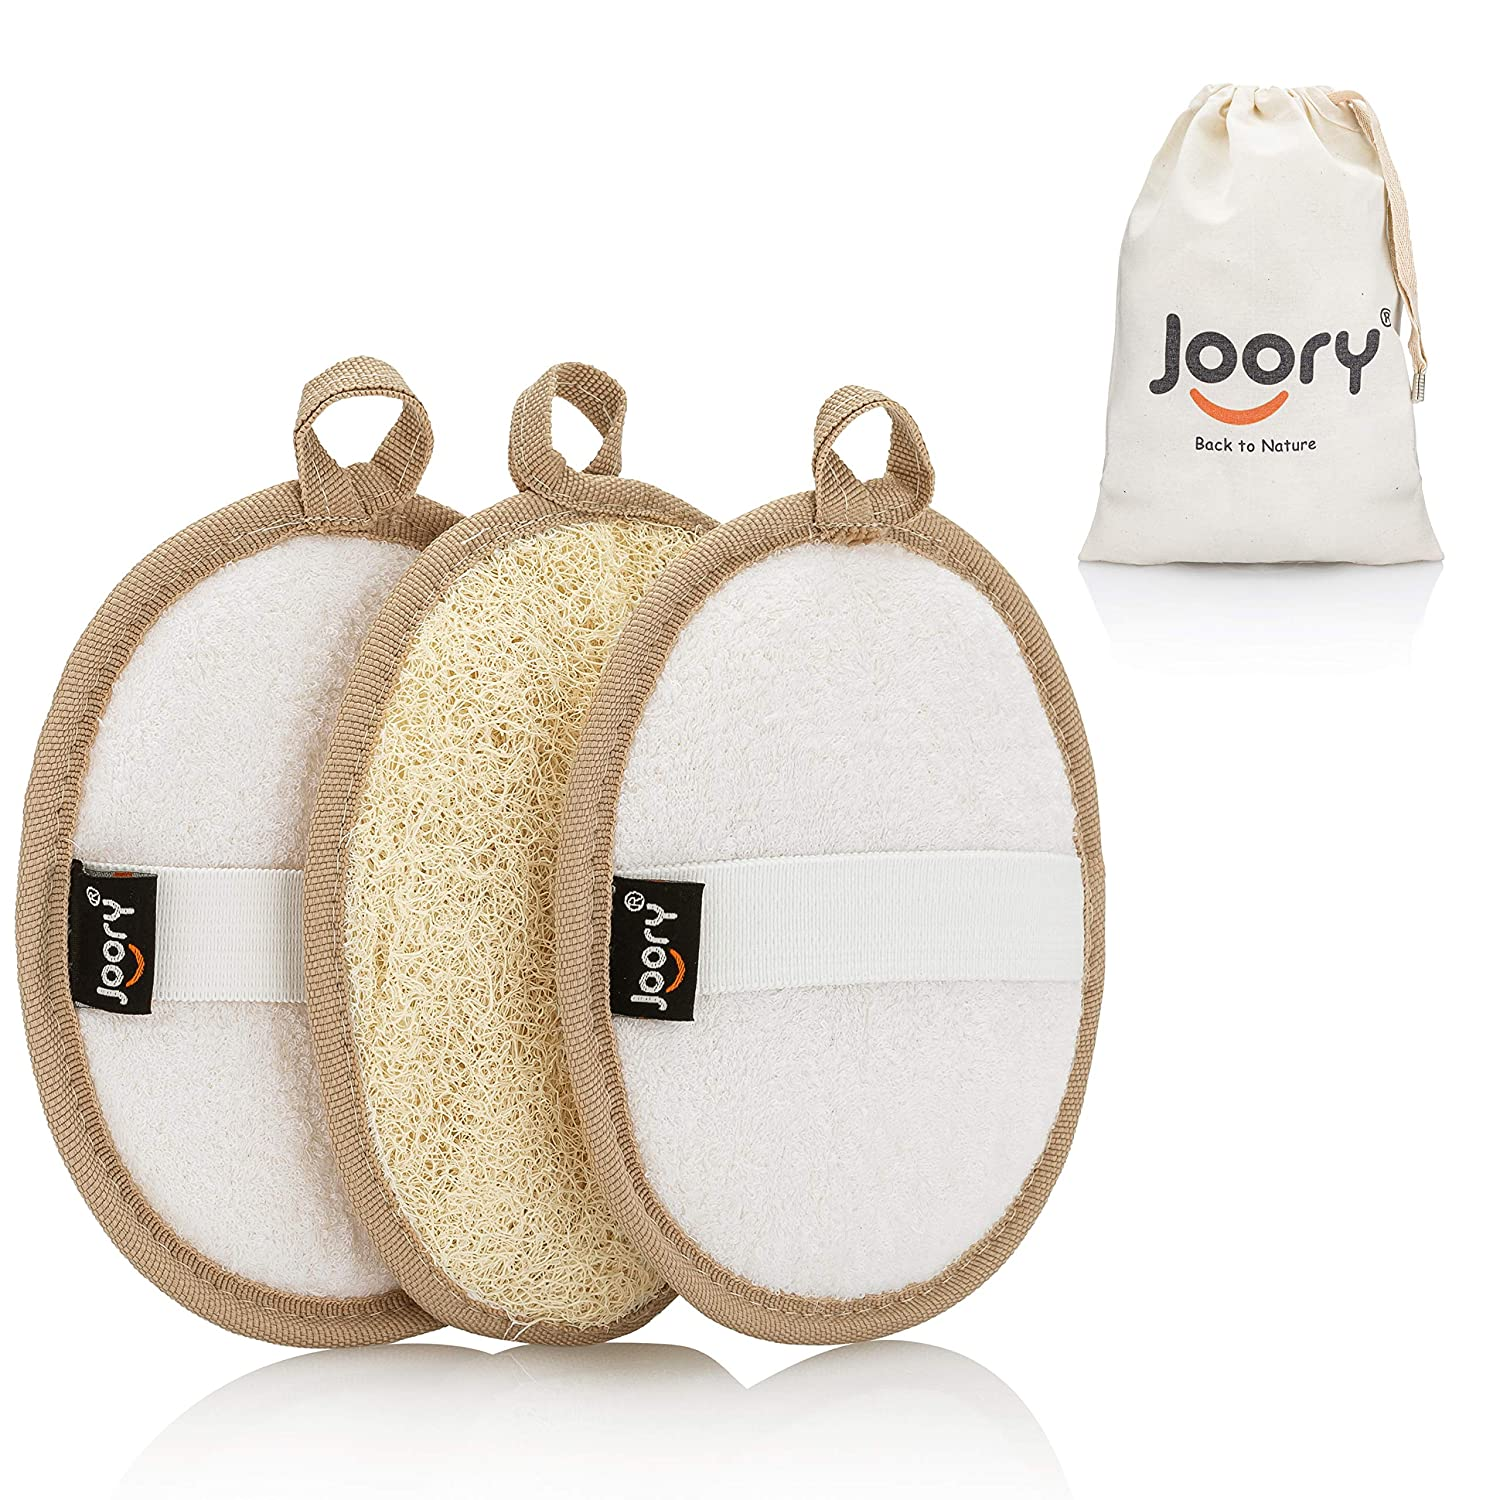 Egyptian Natural Loofah Exfoliating Body Scrubber 3-Pack – Shower Sponges for Men and Women – Eco-Friendly Oval Bath and Body Exfoliators with Palm Straps, Cotton Backing Pads and Linen Carry Bag: Beauty